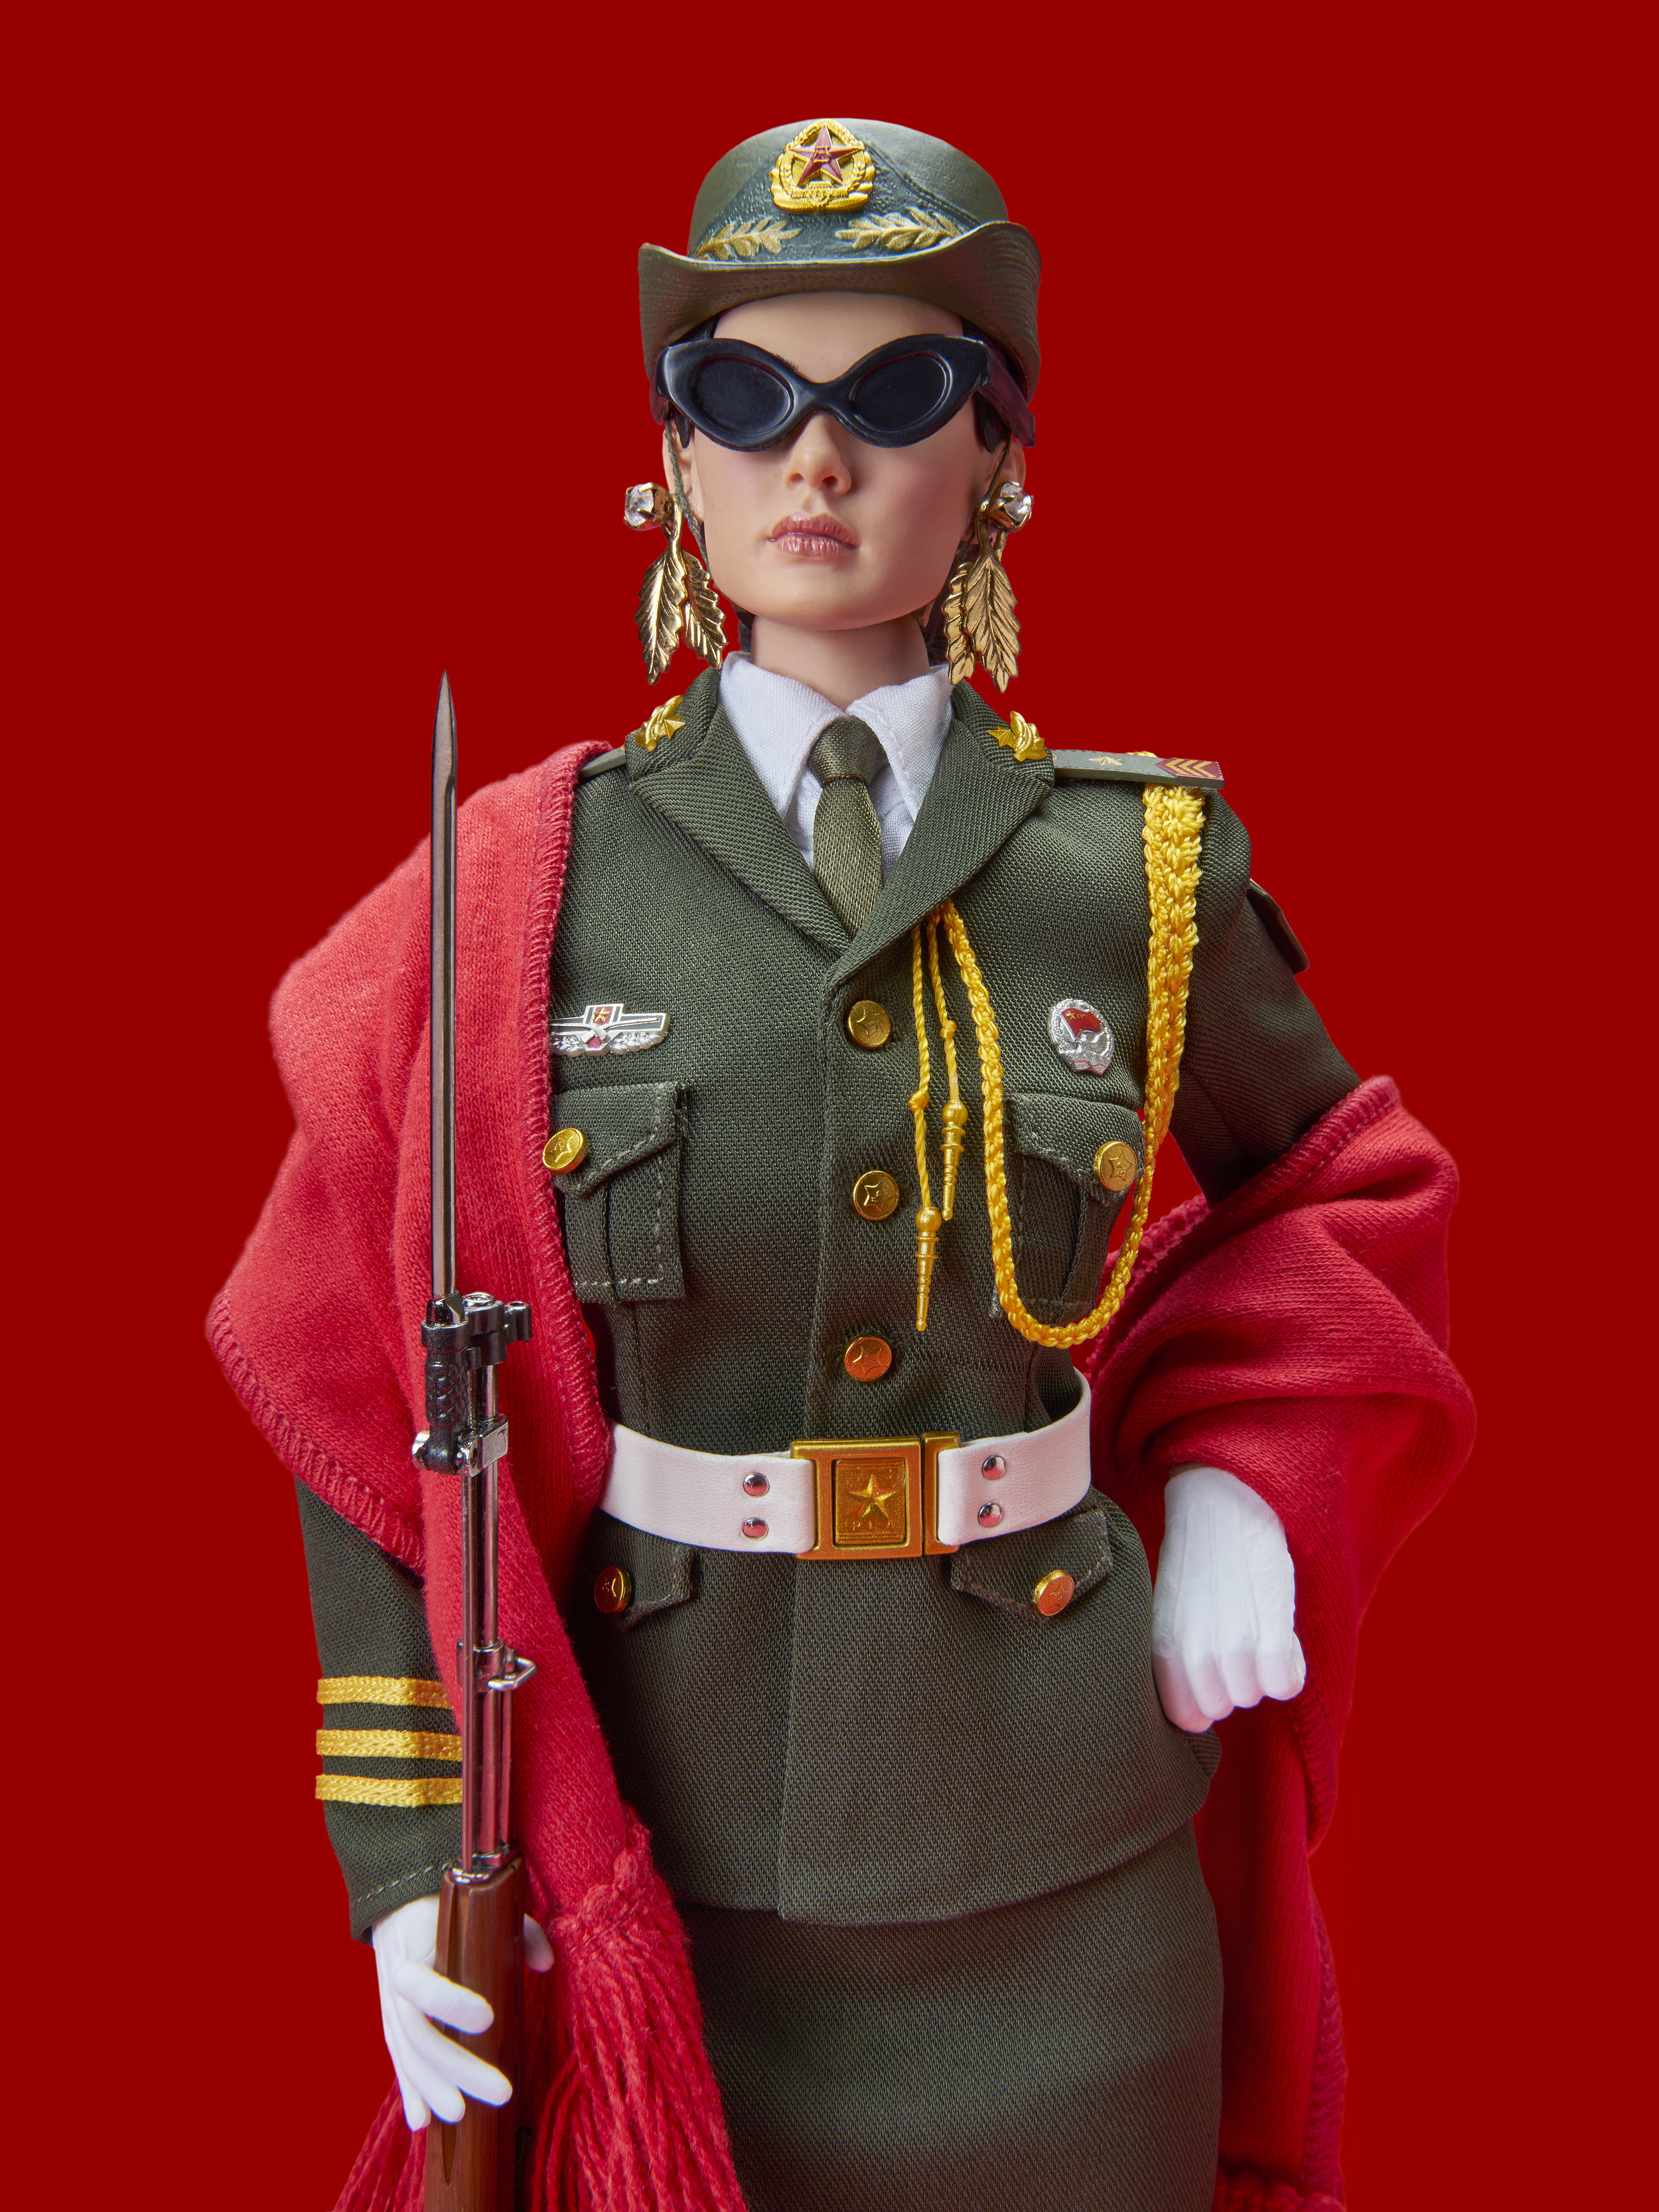 RED CHINESE DOLL (IN DONNA KARAN)